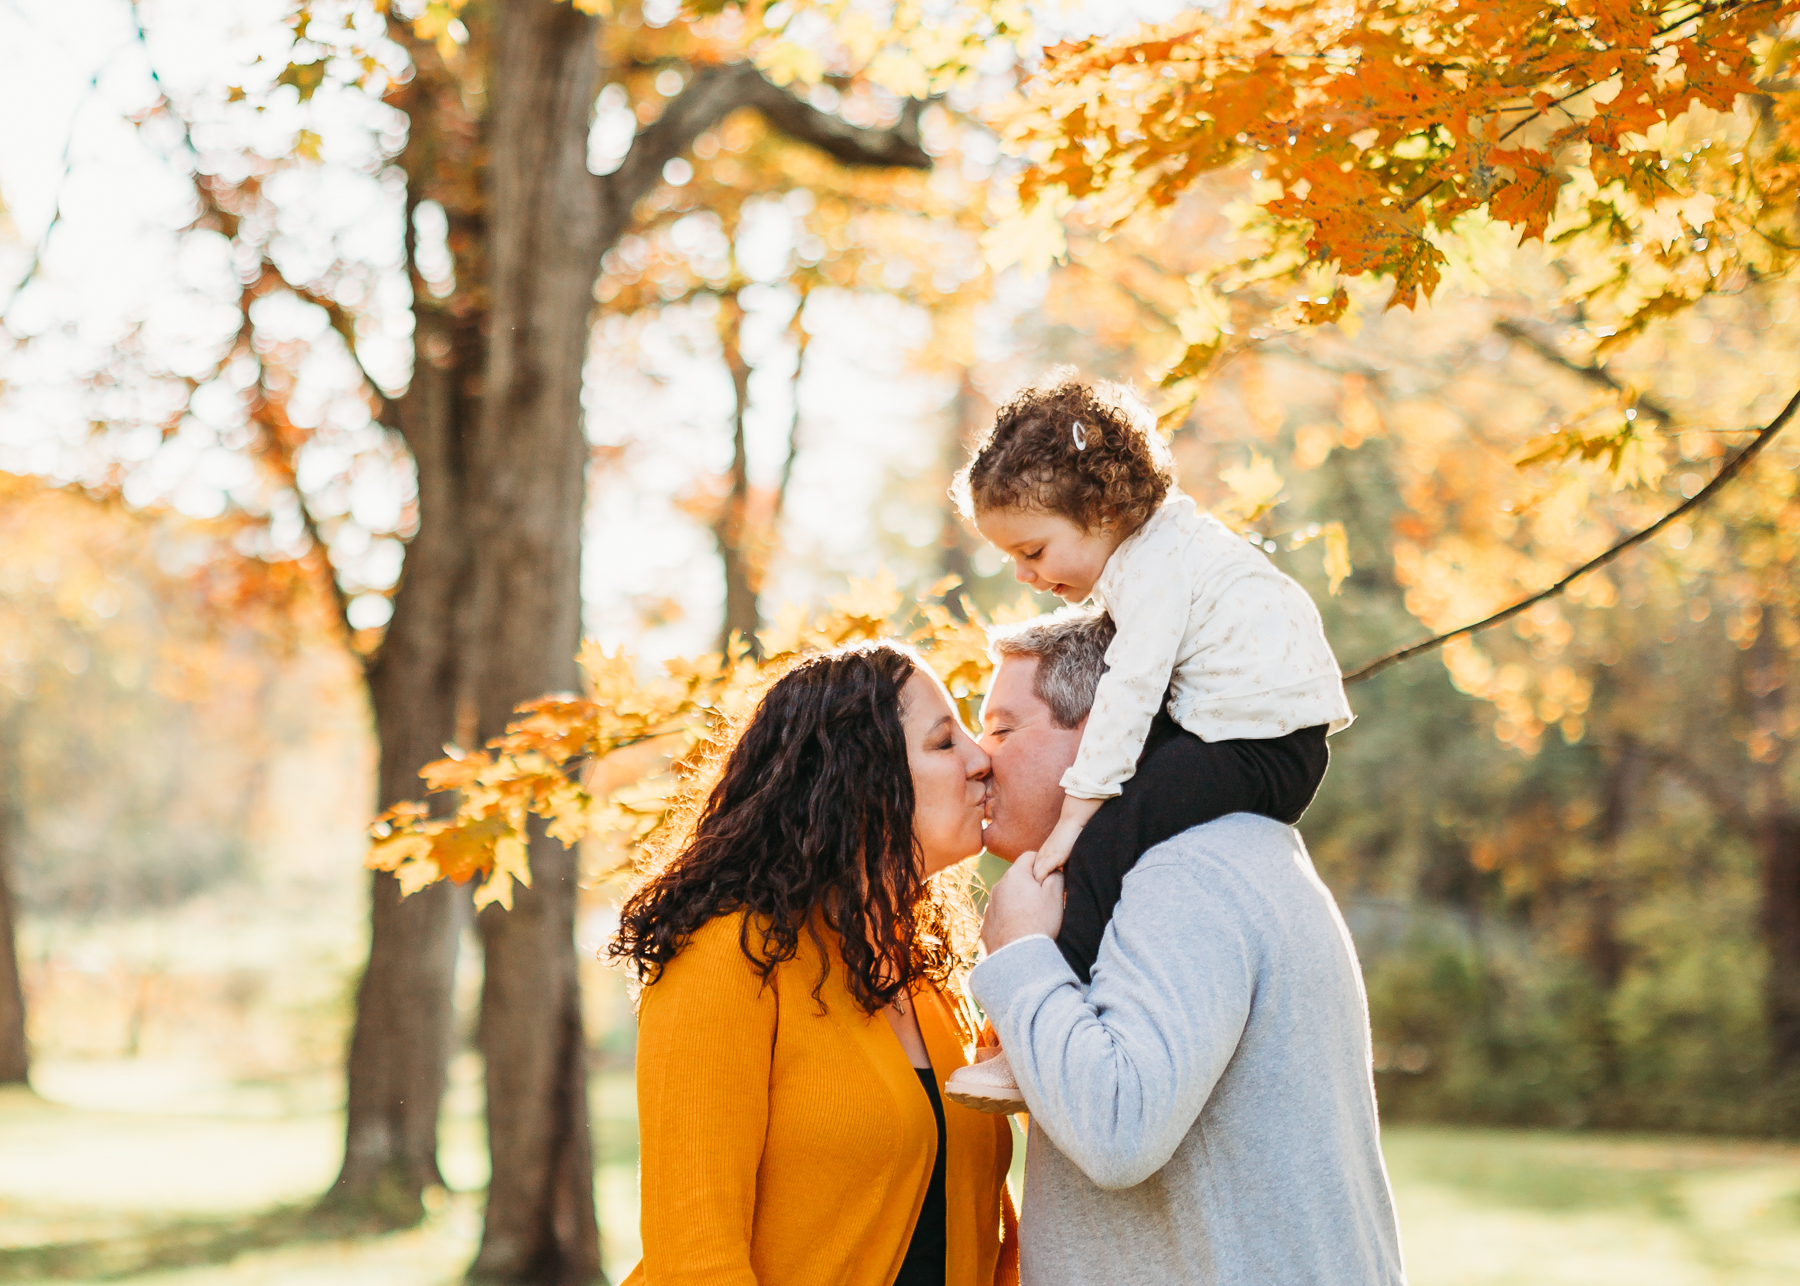 Camera shy kids? We'll take the focus off of them and turn it on you for a few! Sudbury family photographer Joy LeDuc. Massachusetts natural light photographer.